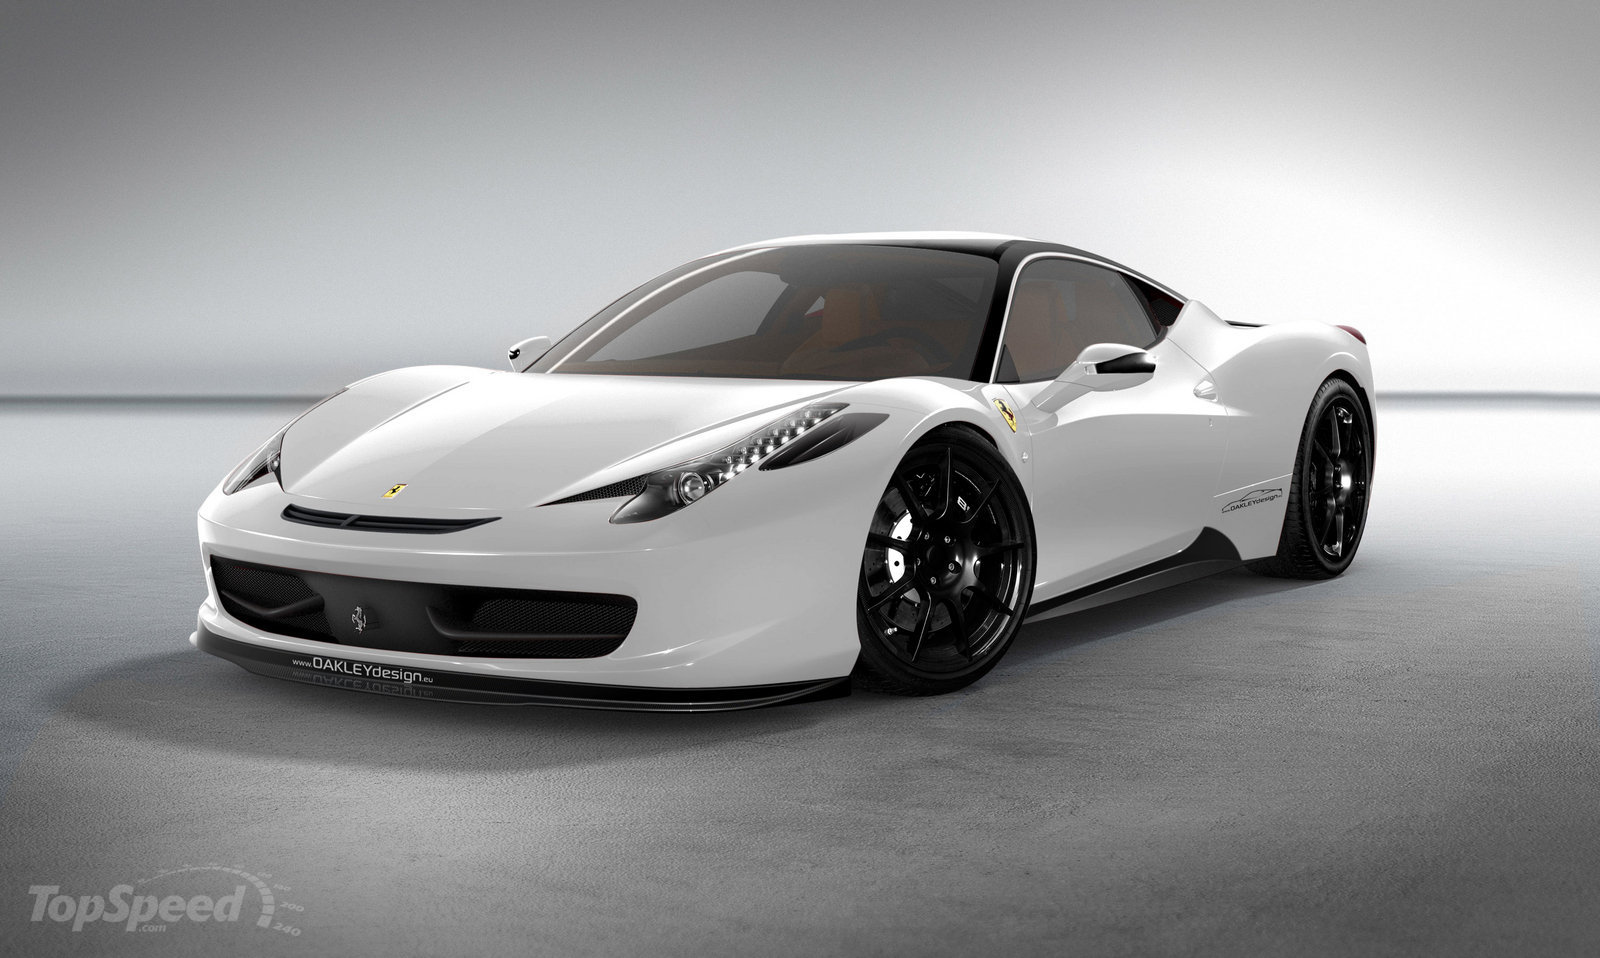 The Ferrari 458 Italia limited